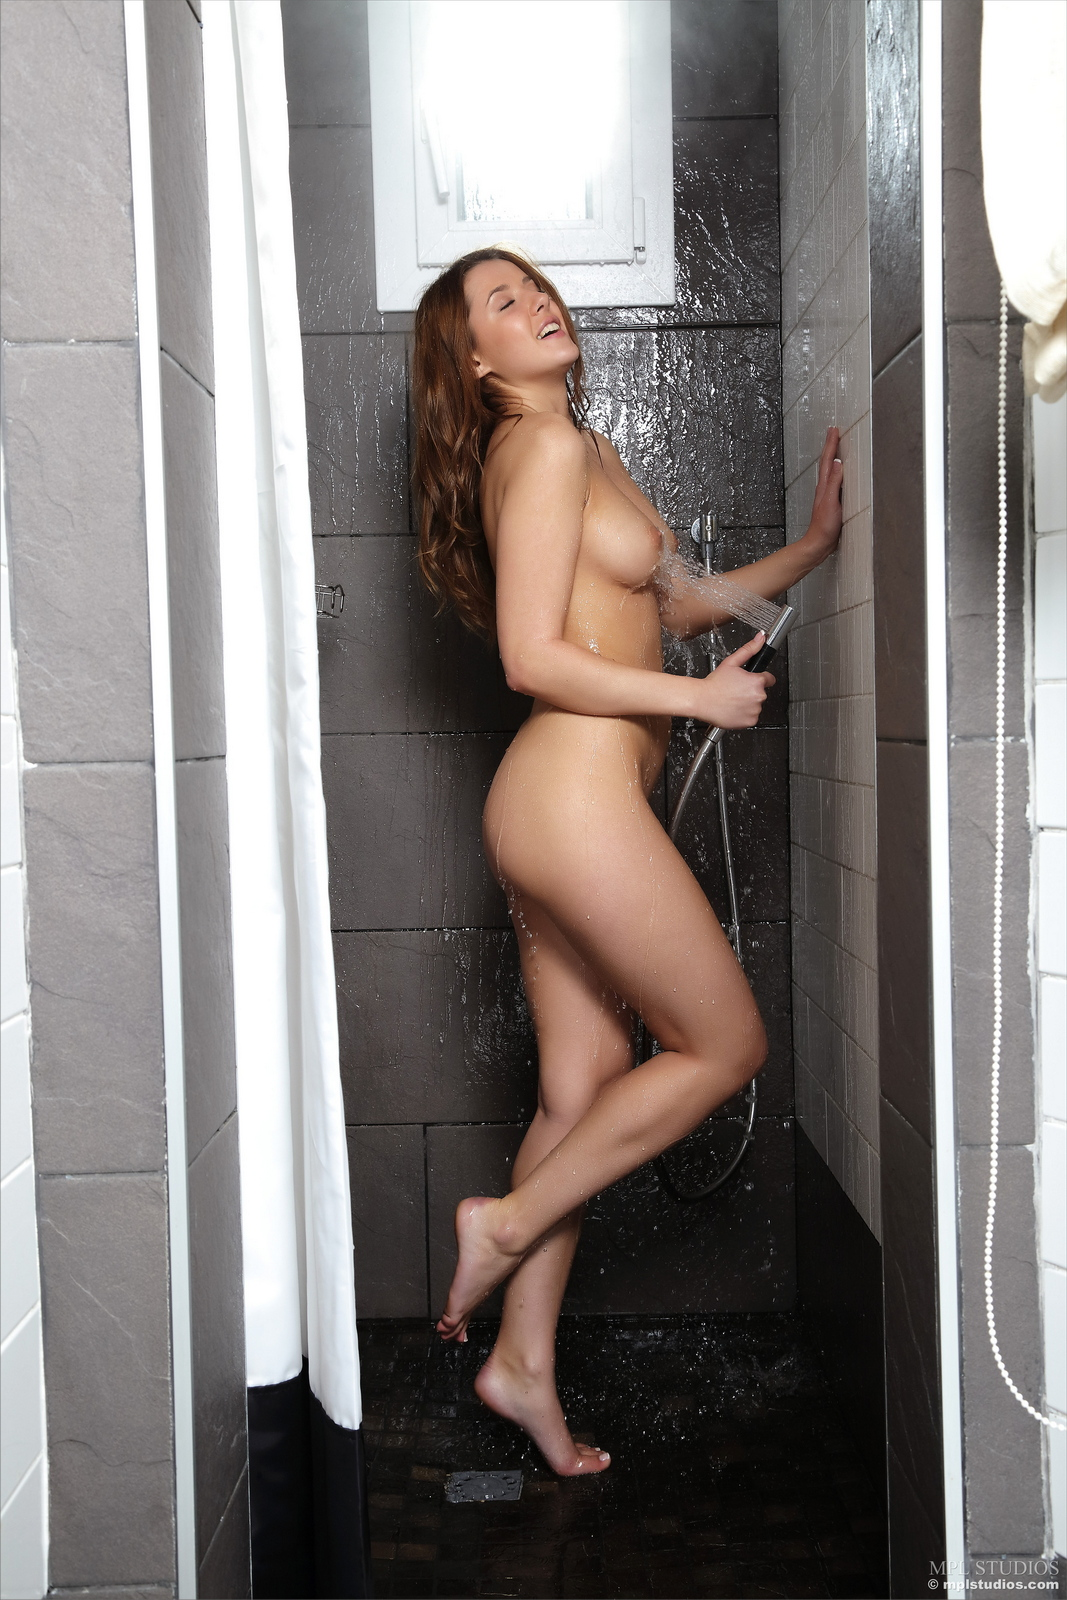 kailena-wet-naked-shower-pussy-mplstudios-10